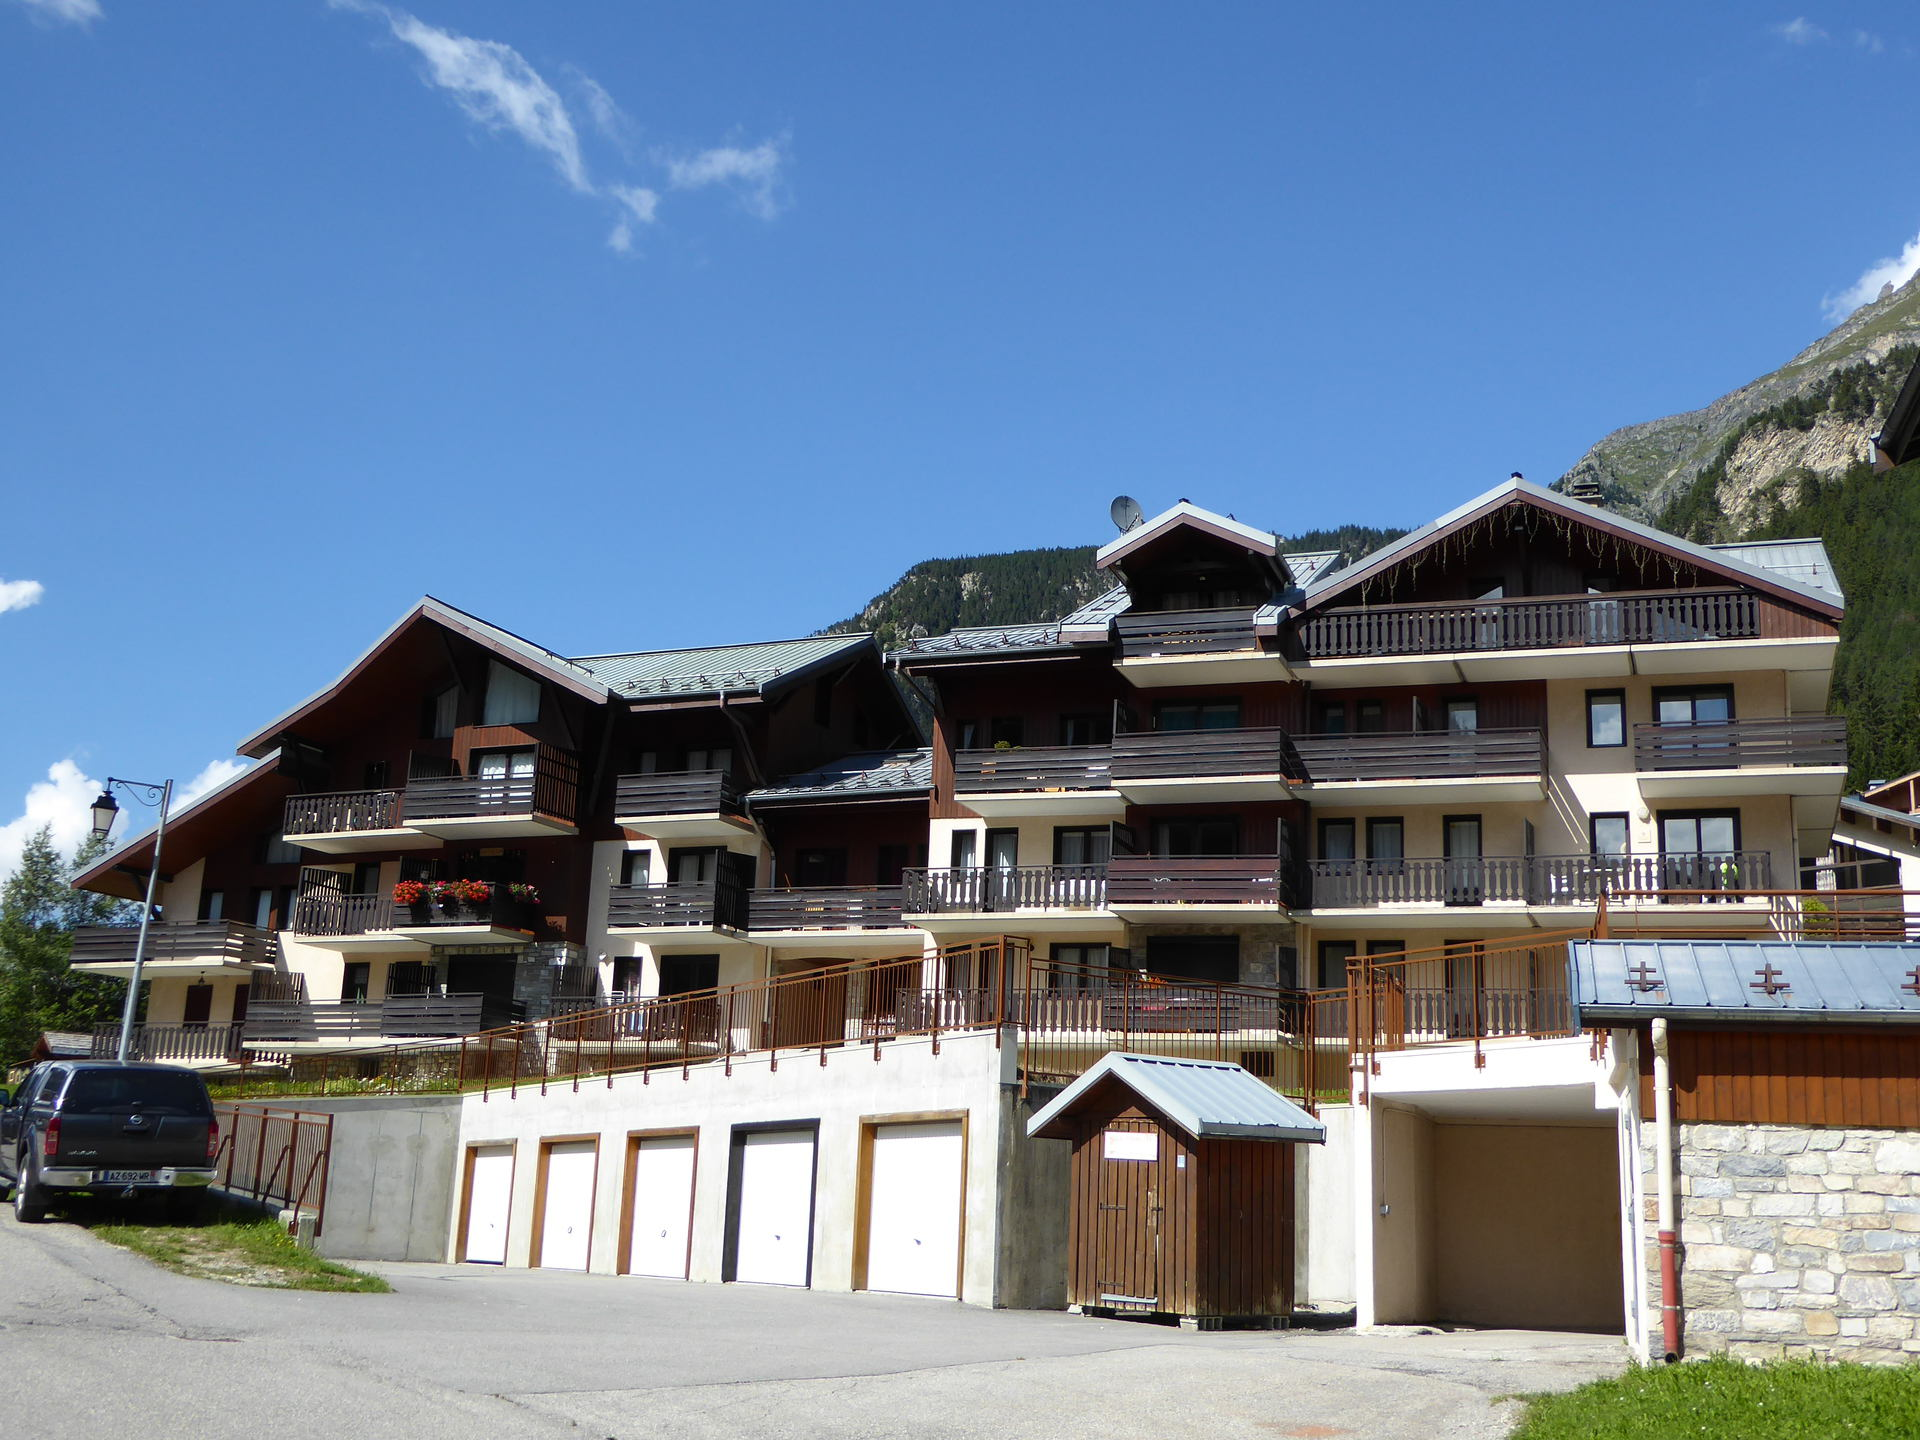 Rental reference : HVPARKING24 to Pralognan la Vanoise